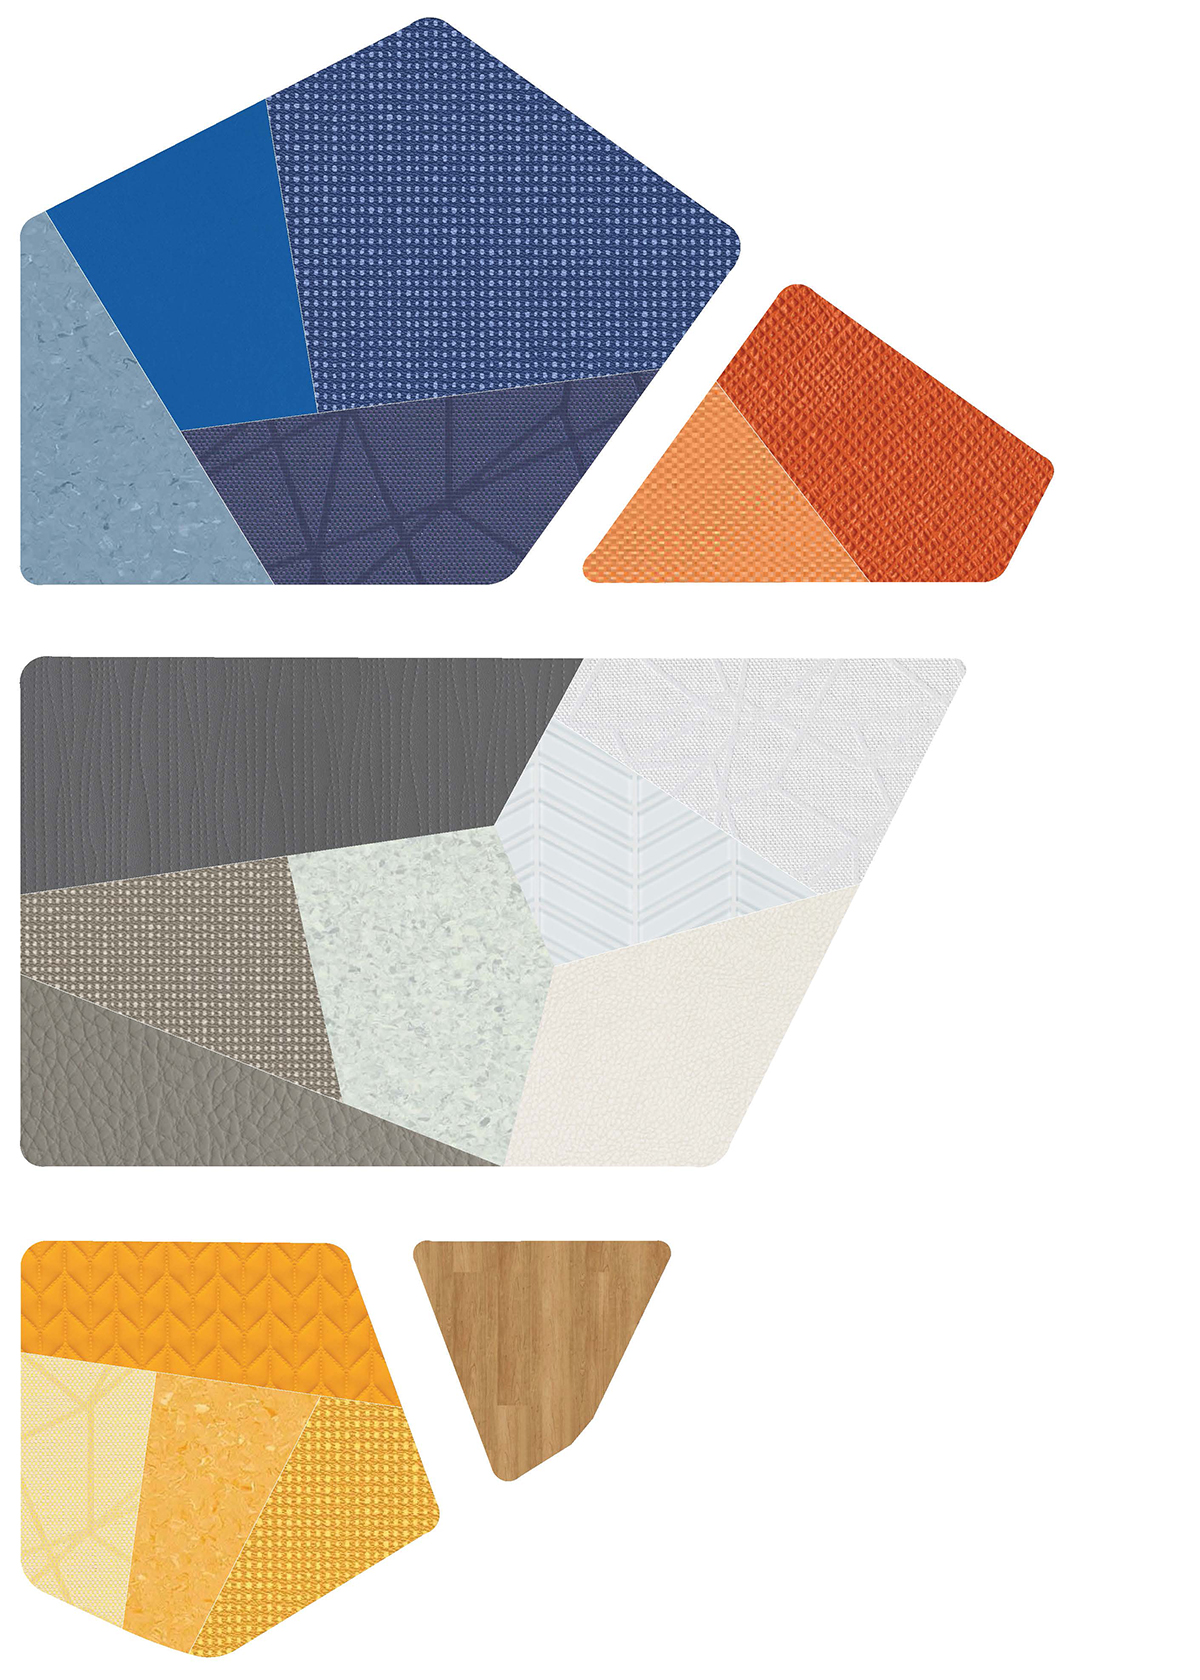 materials selections